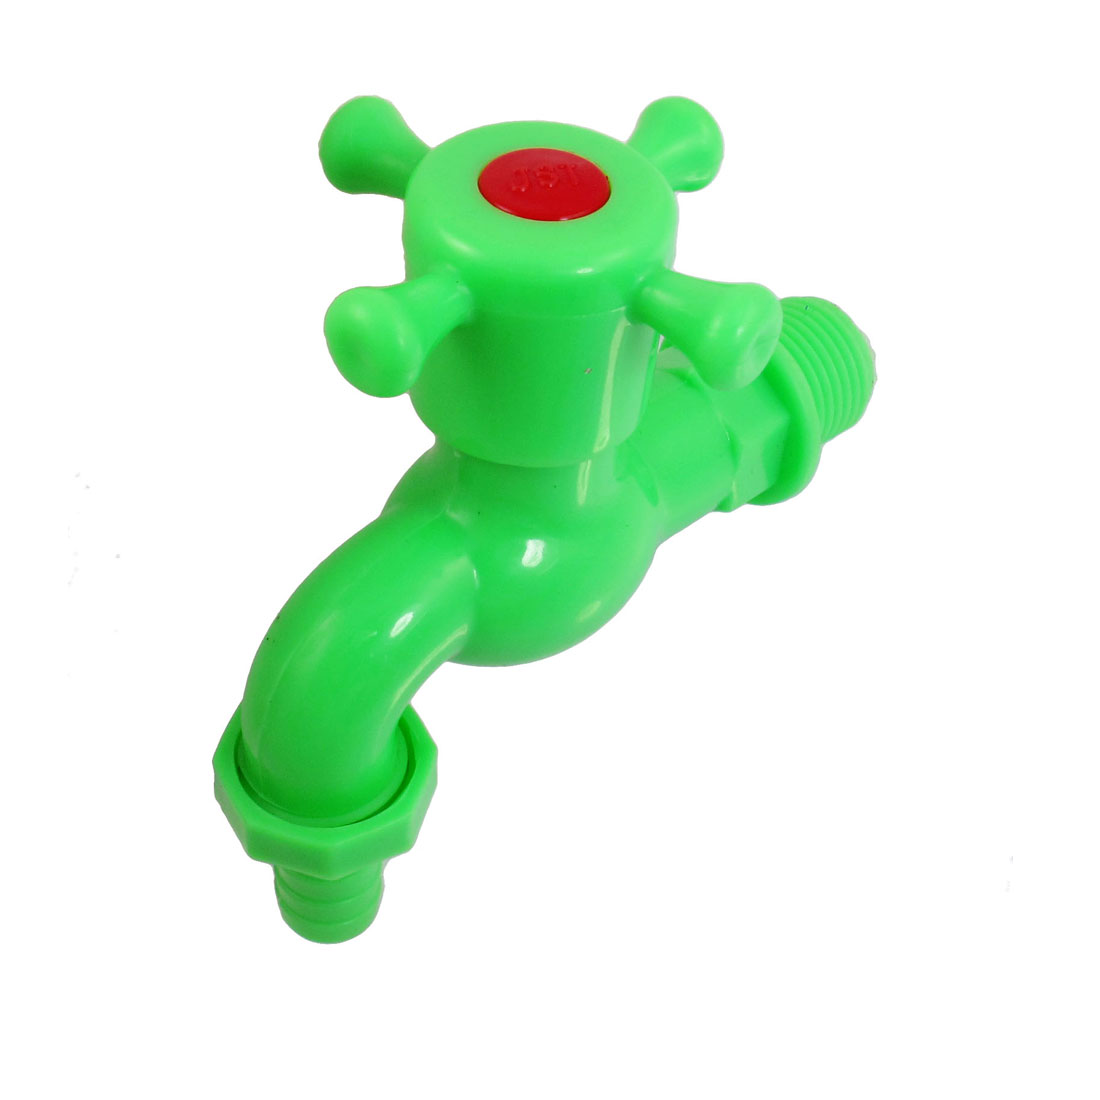 Home 1cm Outlet Diameter Green Plastic Water Tap Faucet